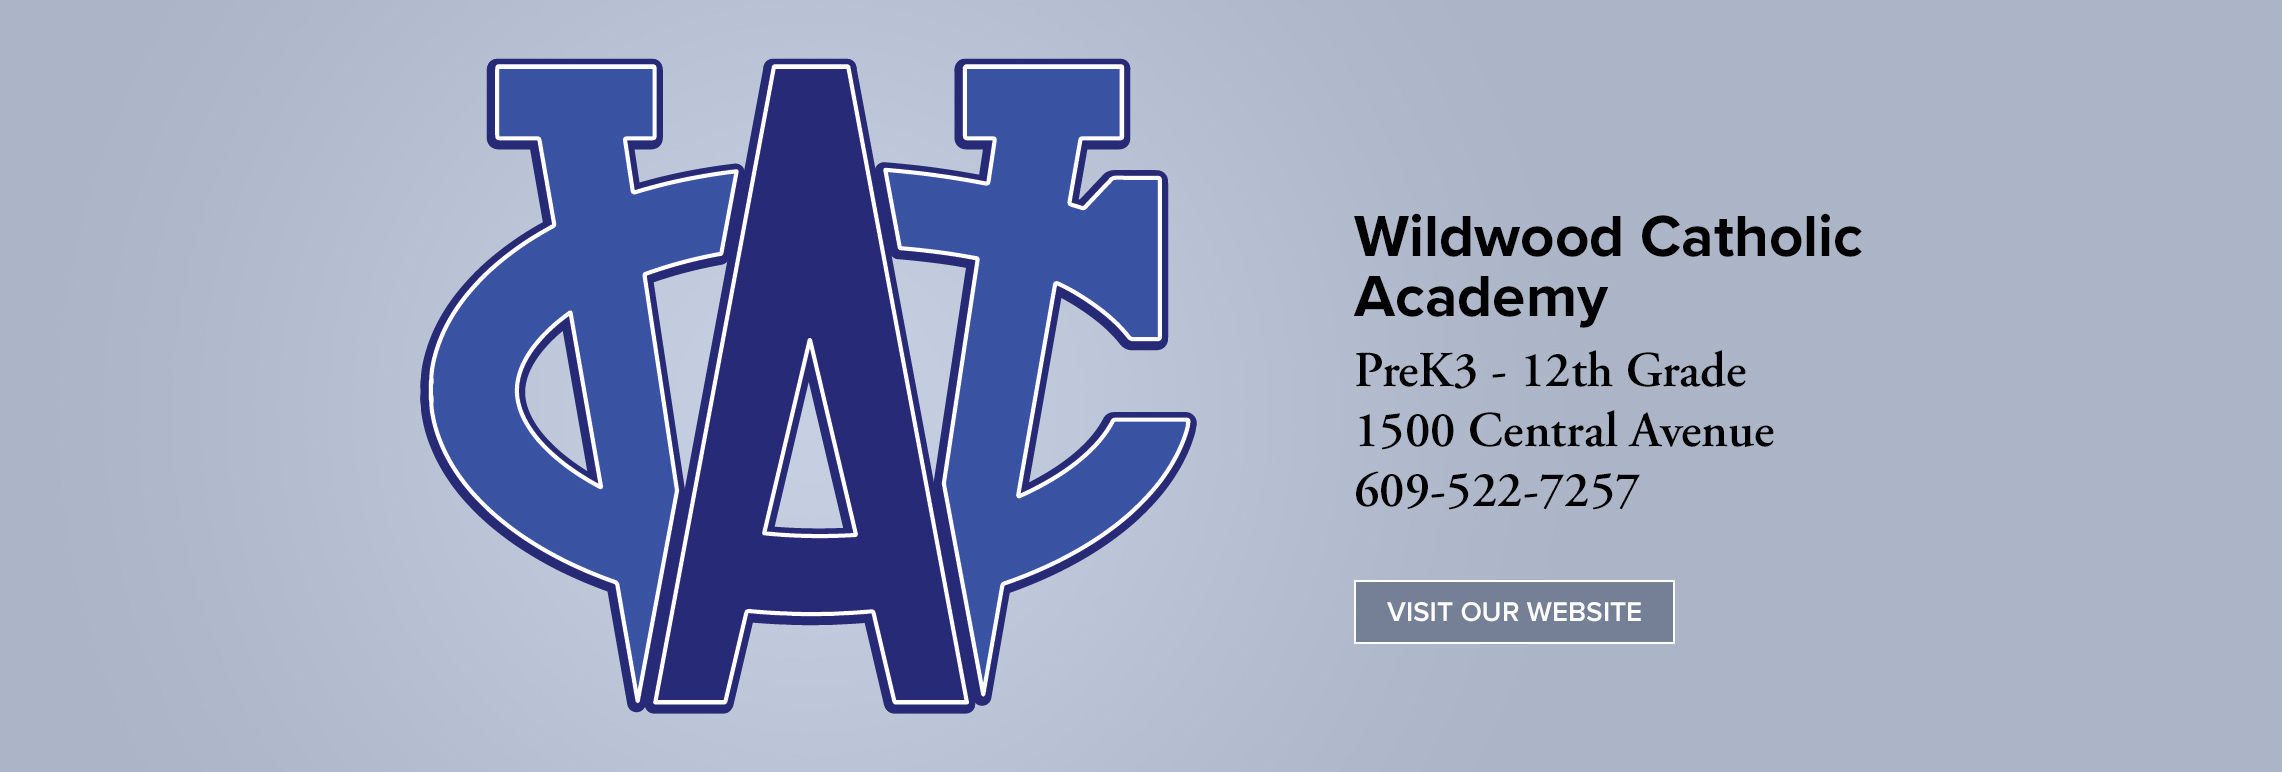 Wildwood Catholic Academy